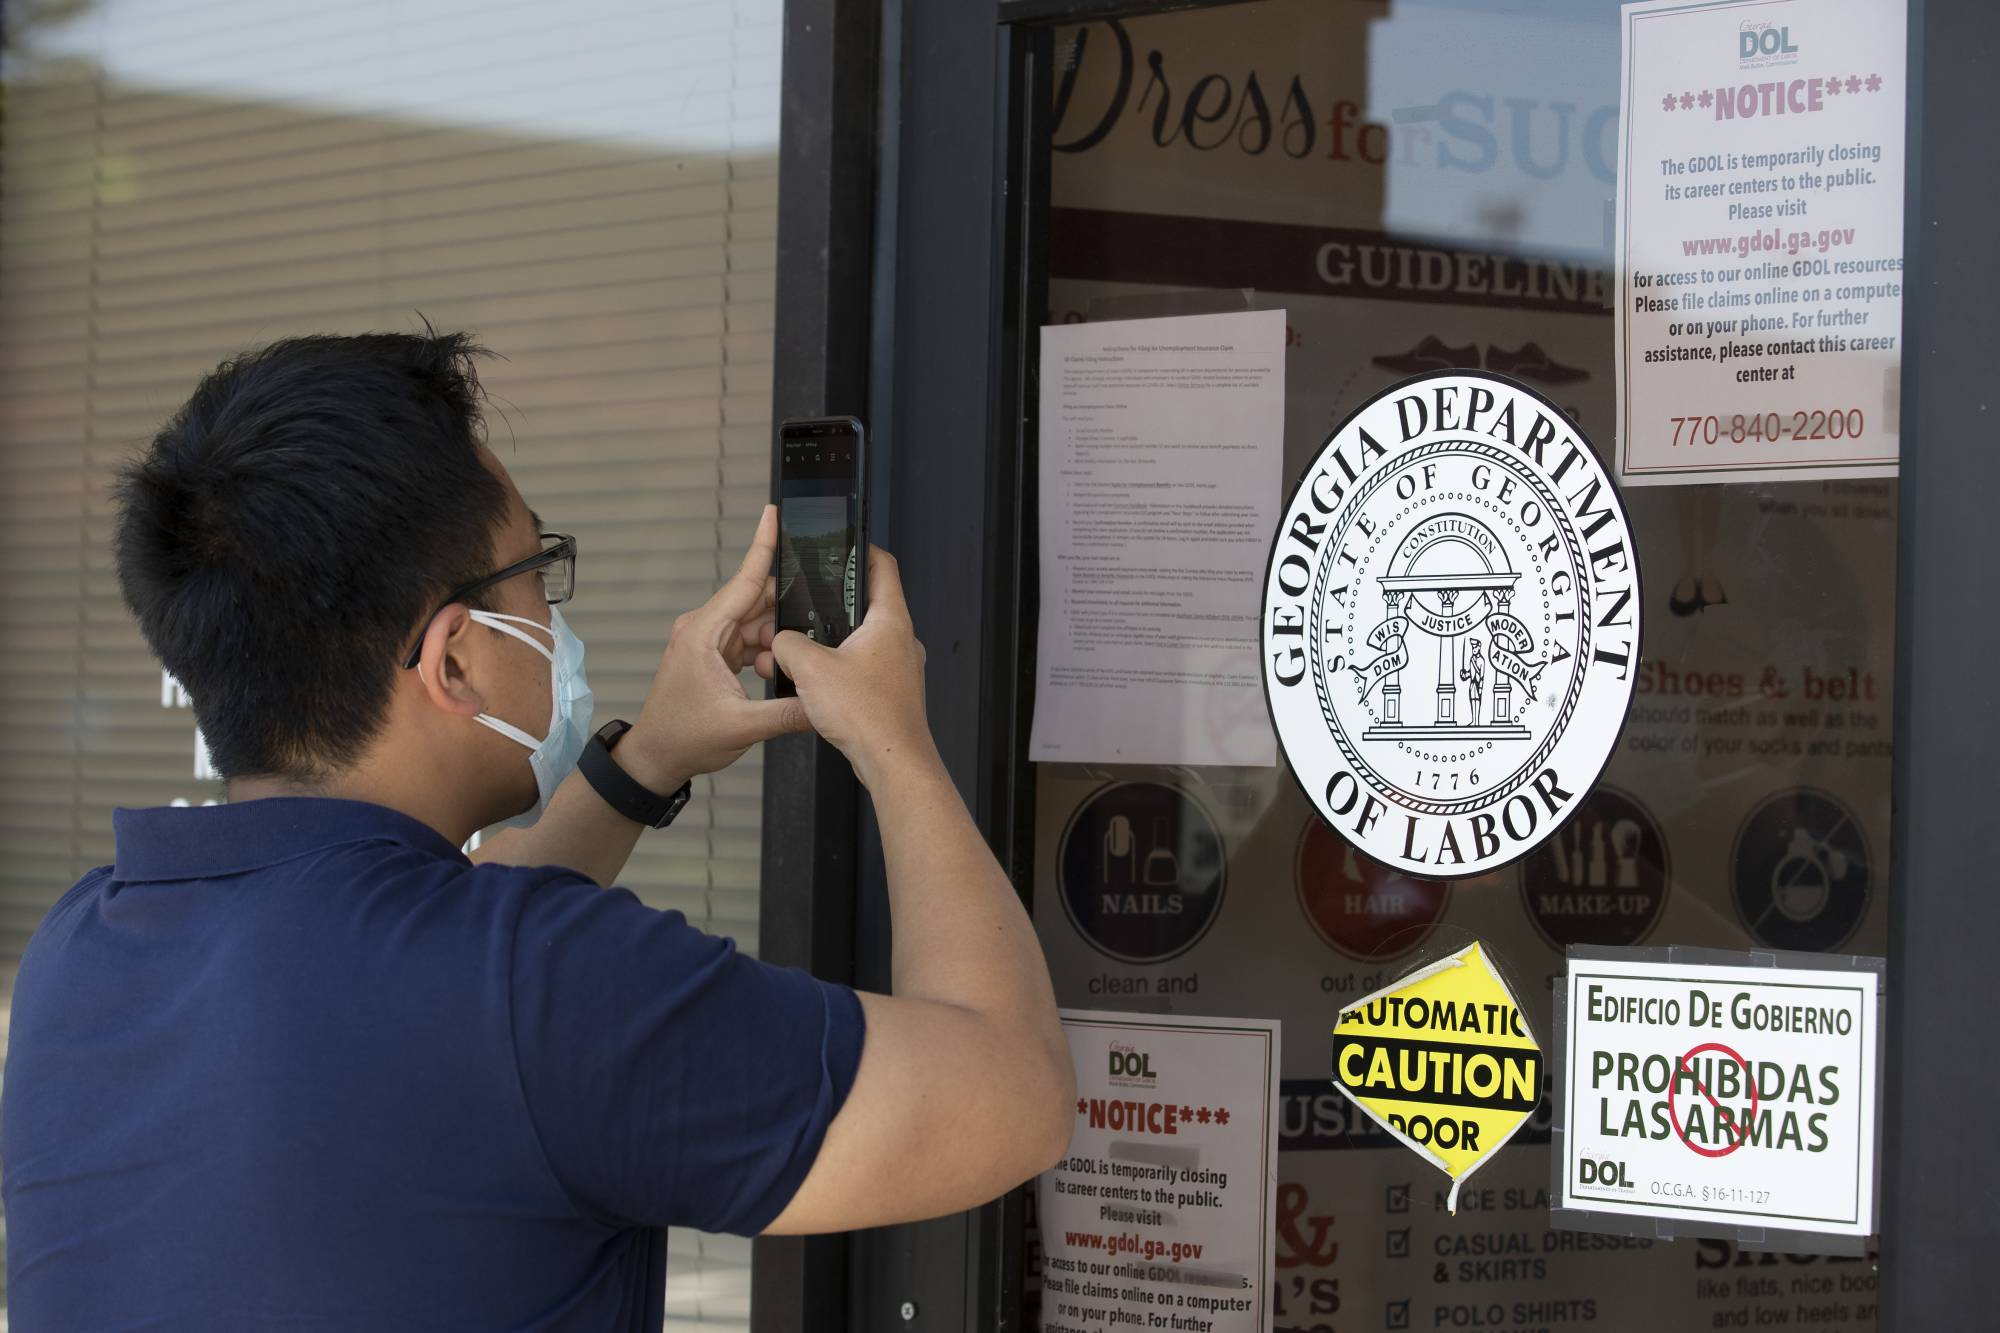 A man uses his phone to copy phone numbers posted on the locked doors of a Georgia Department of Labor office Thursday, May 7, 2020, in Norcross Ga. (AP Photo/John Bazemore)